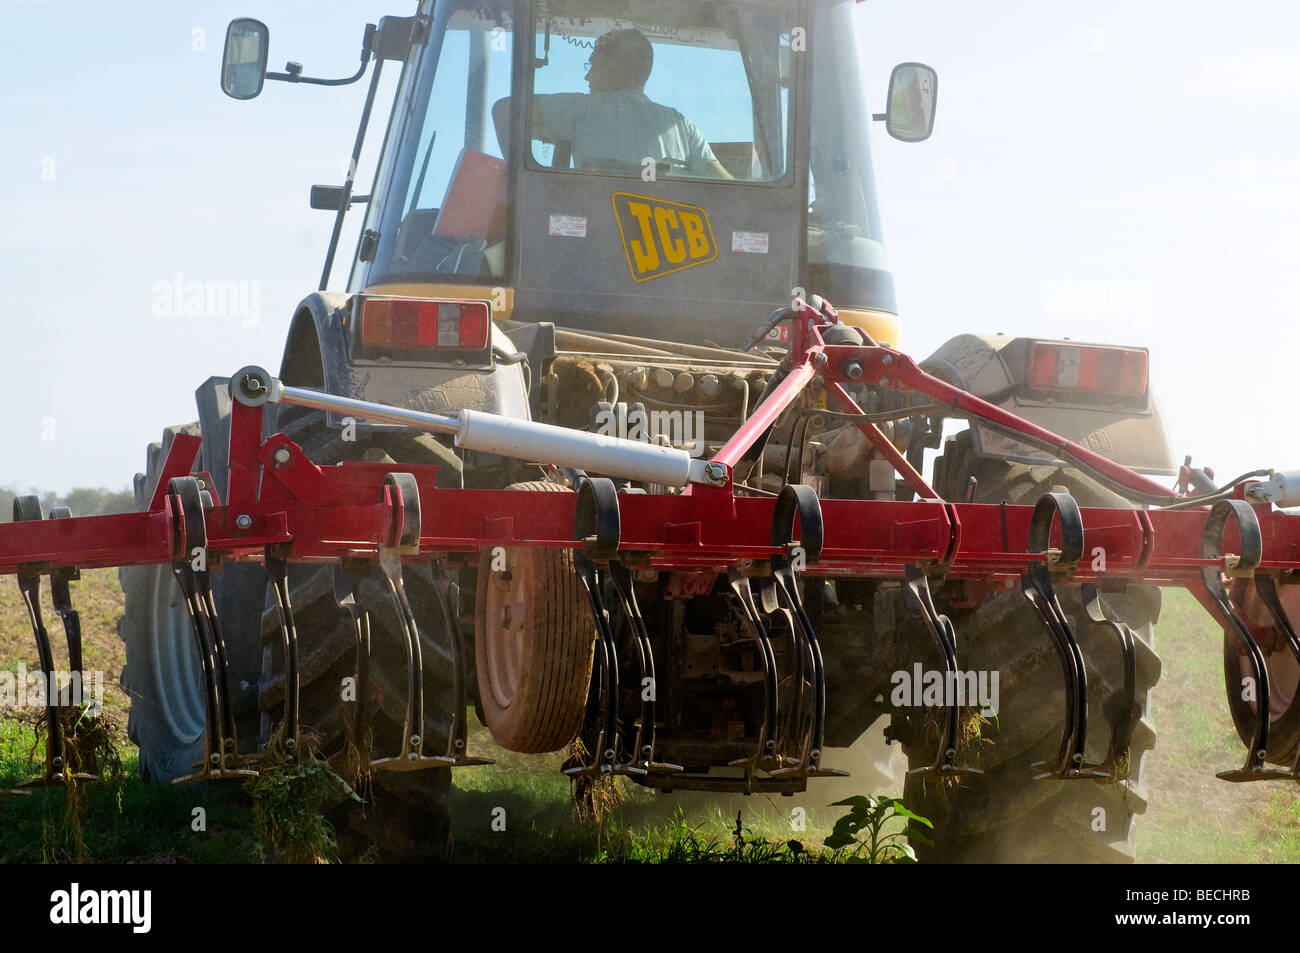 JCB Fastrac 1135 4-wheel drive tractor and soil harrow - France. - Stock Image